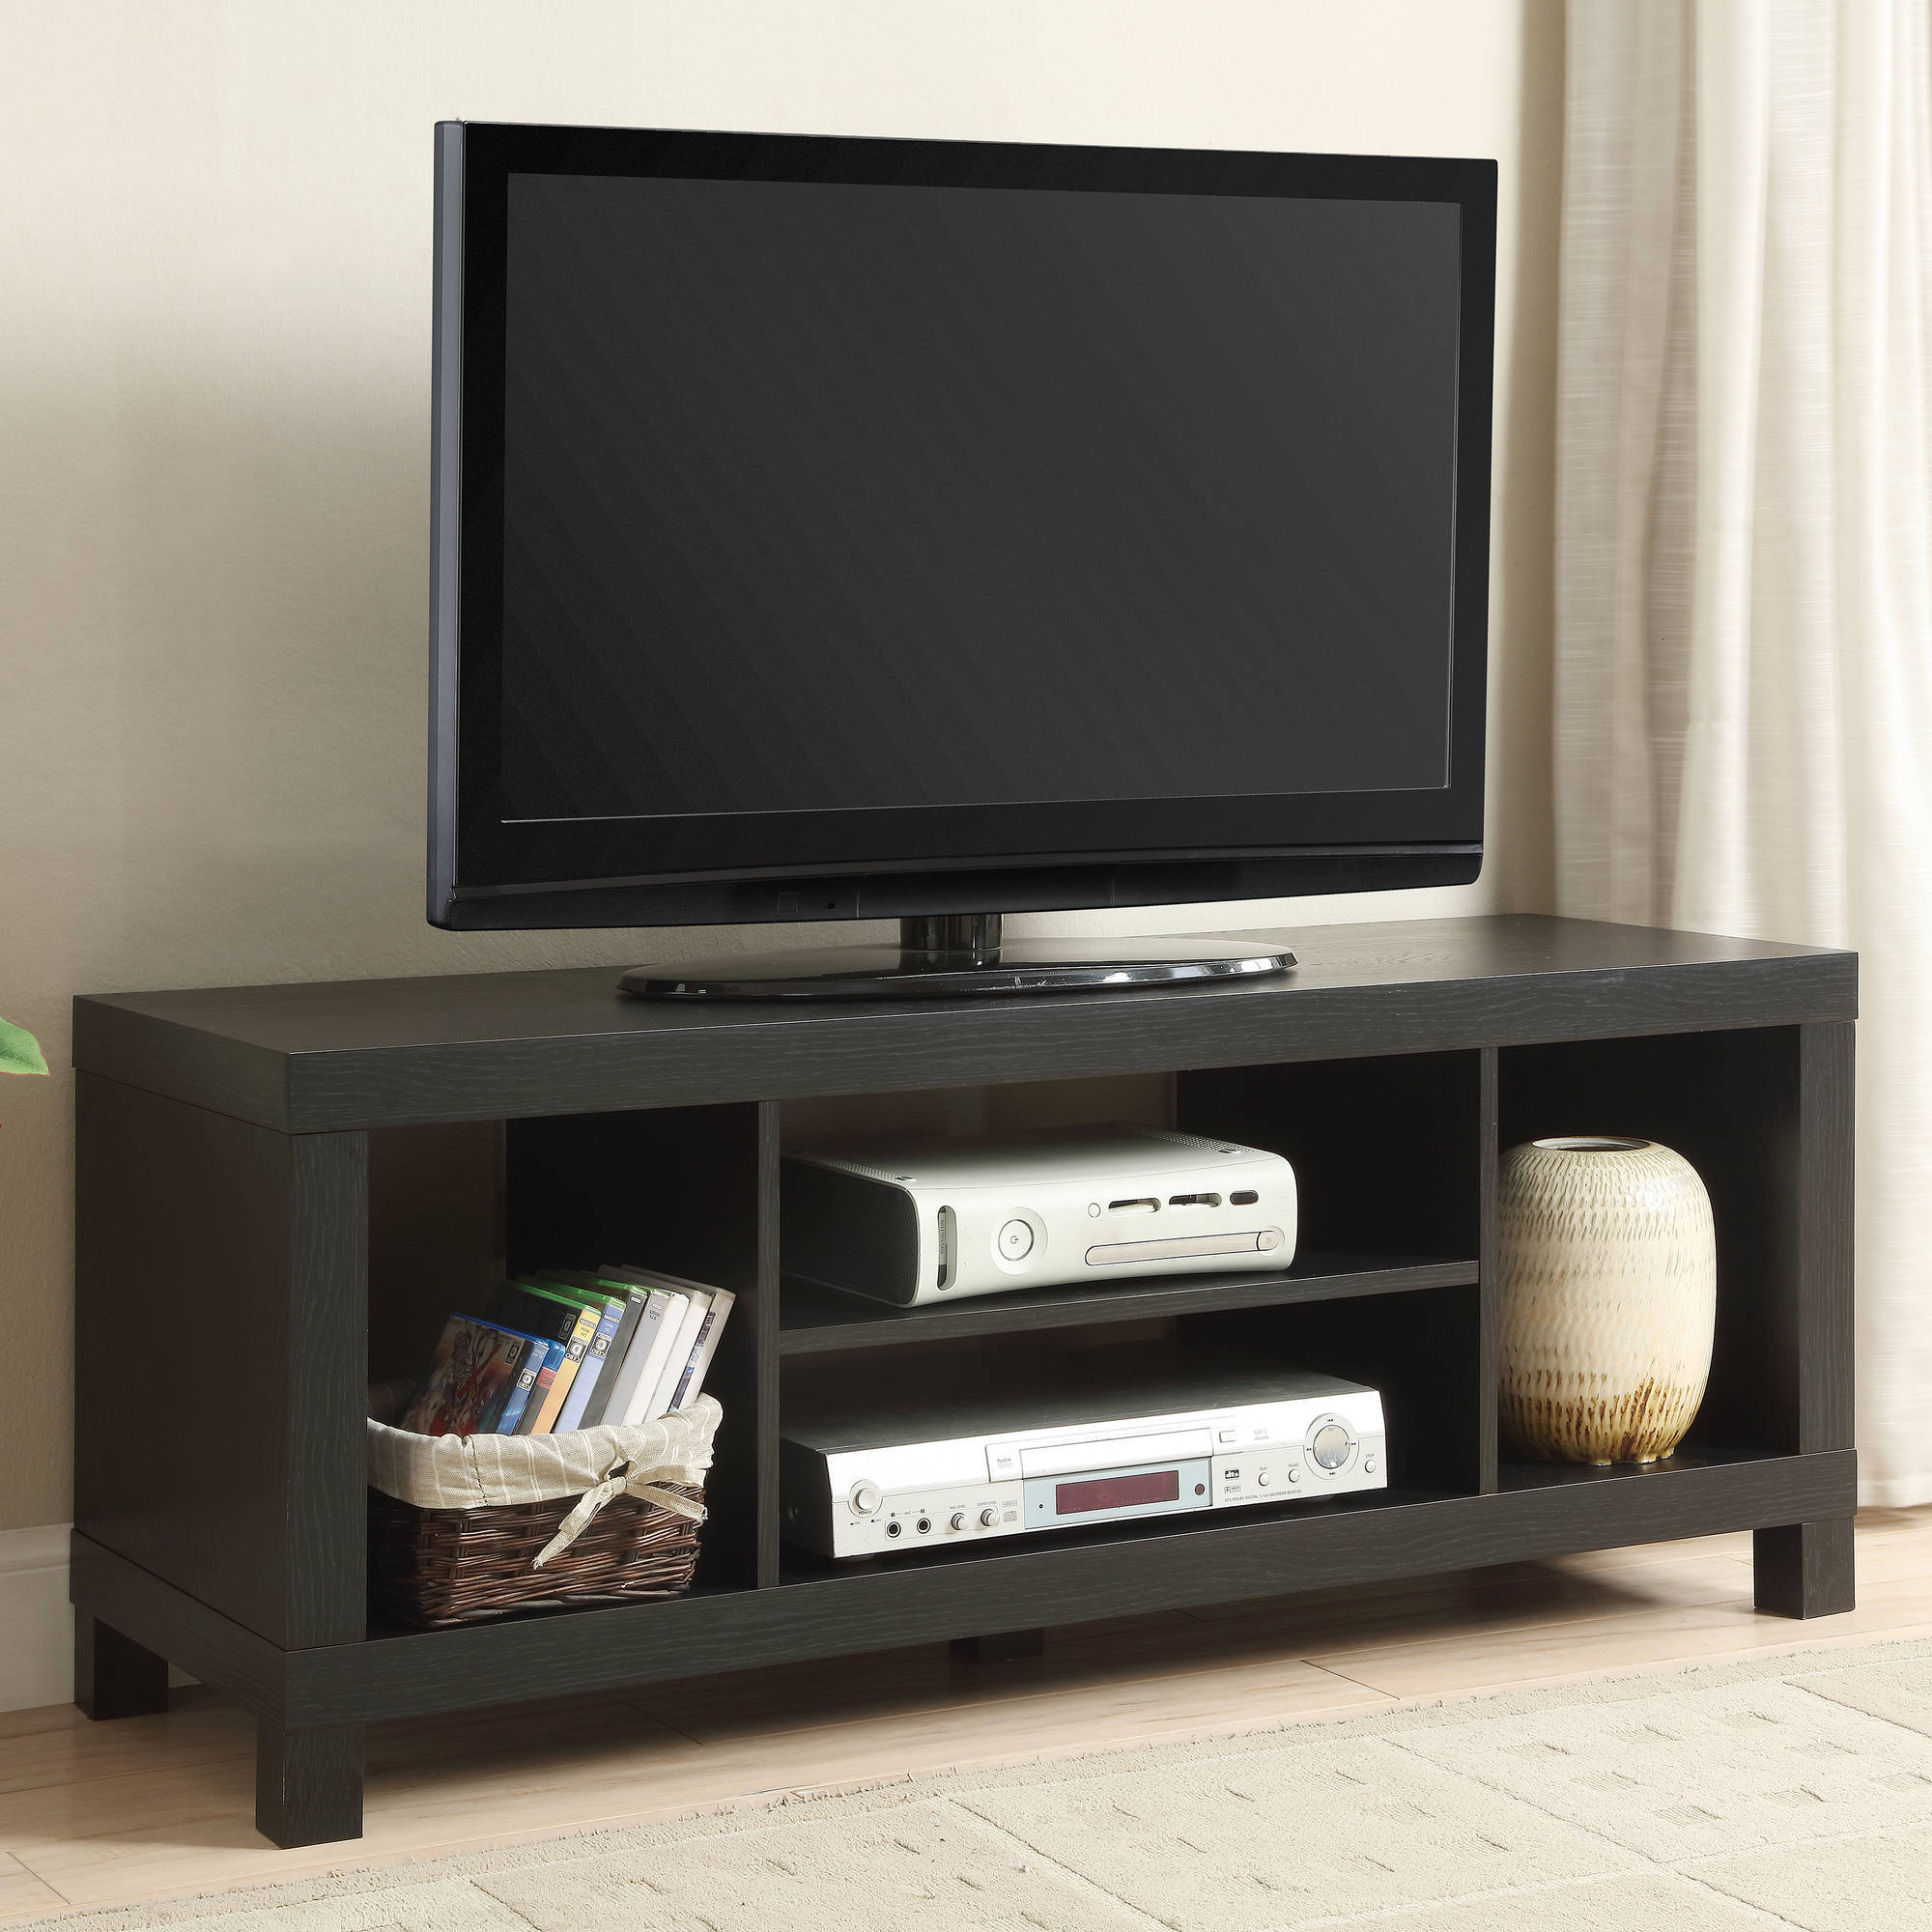 Mainstays Tv Stand For Tvs Up To 42 Quot Multiple Colors